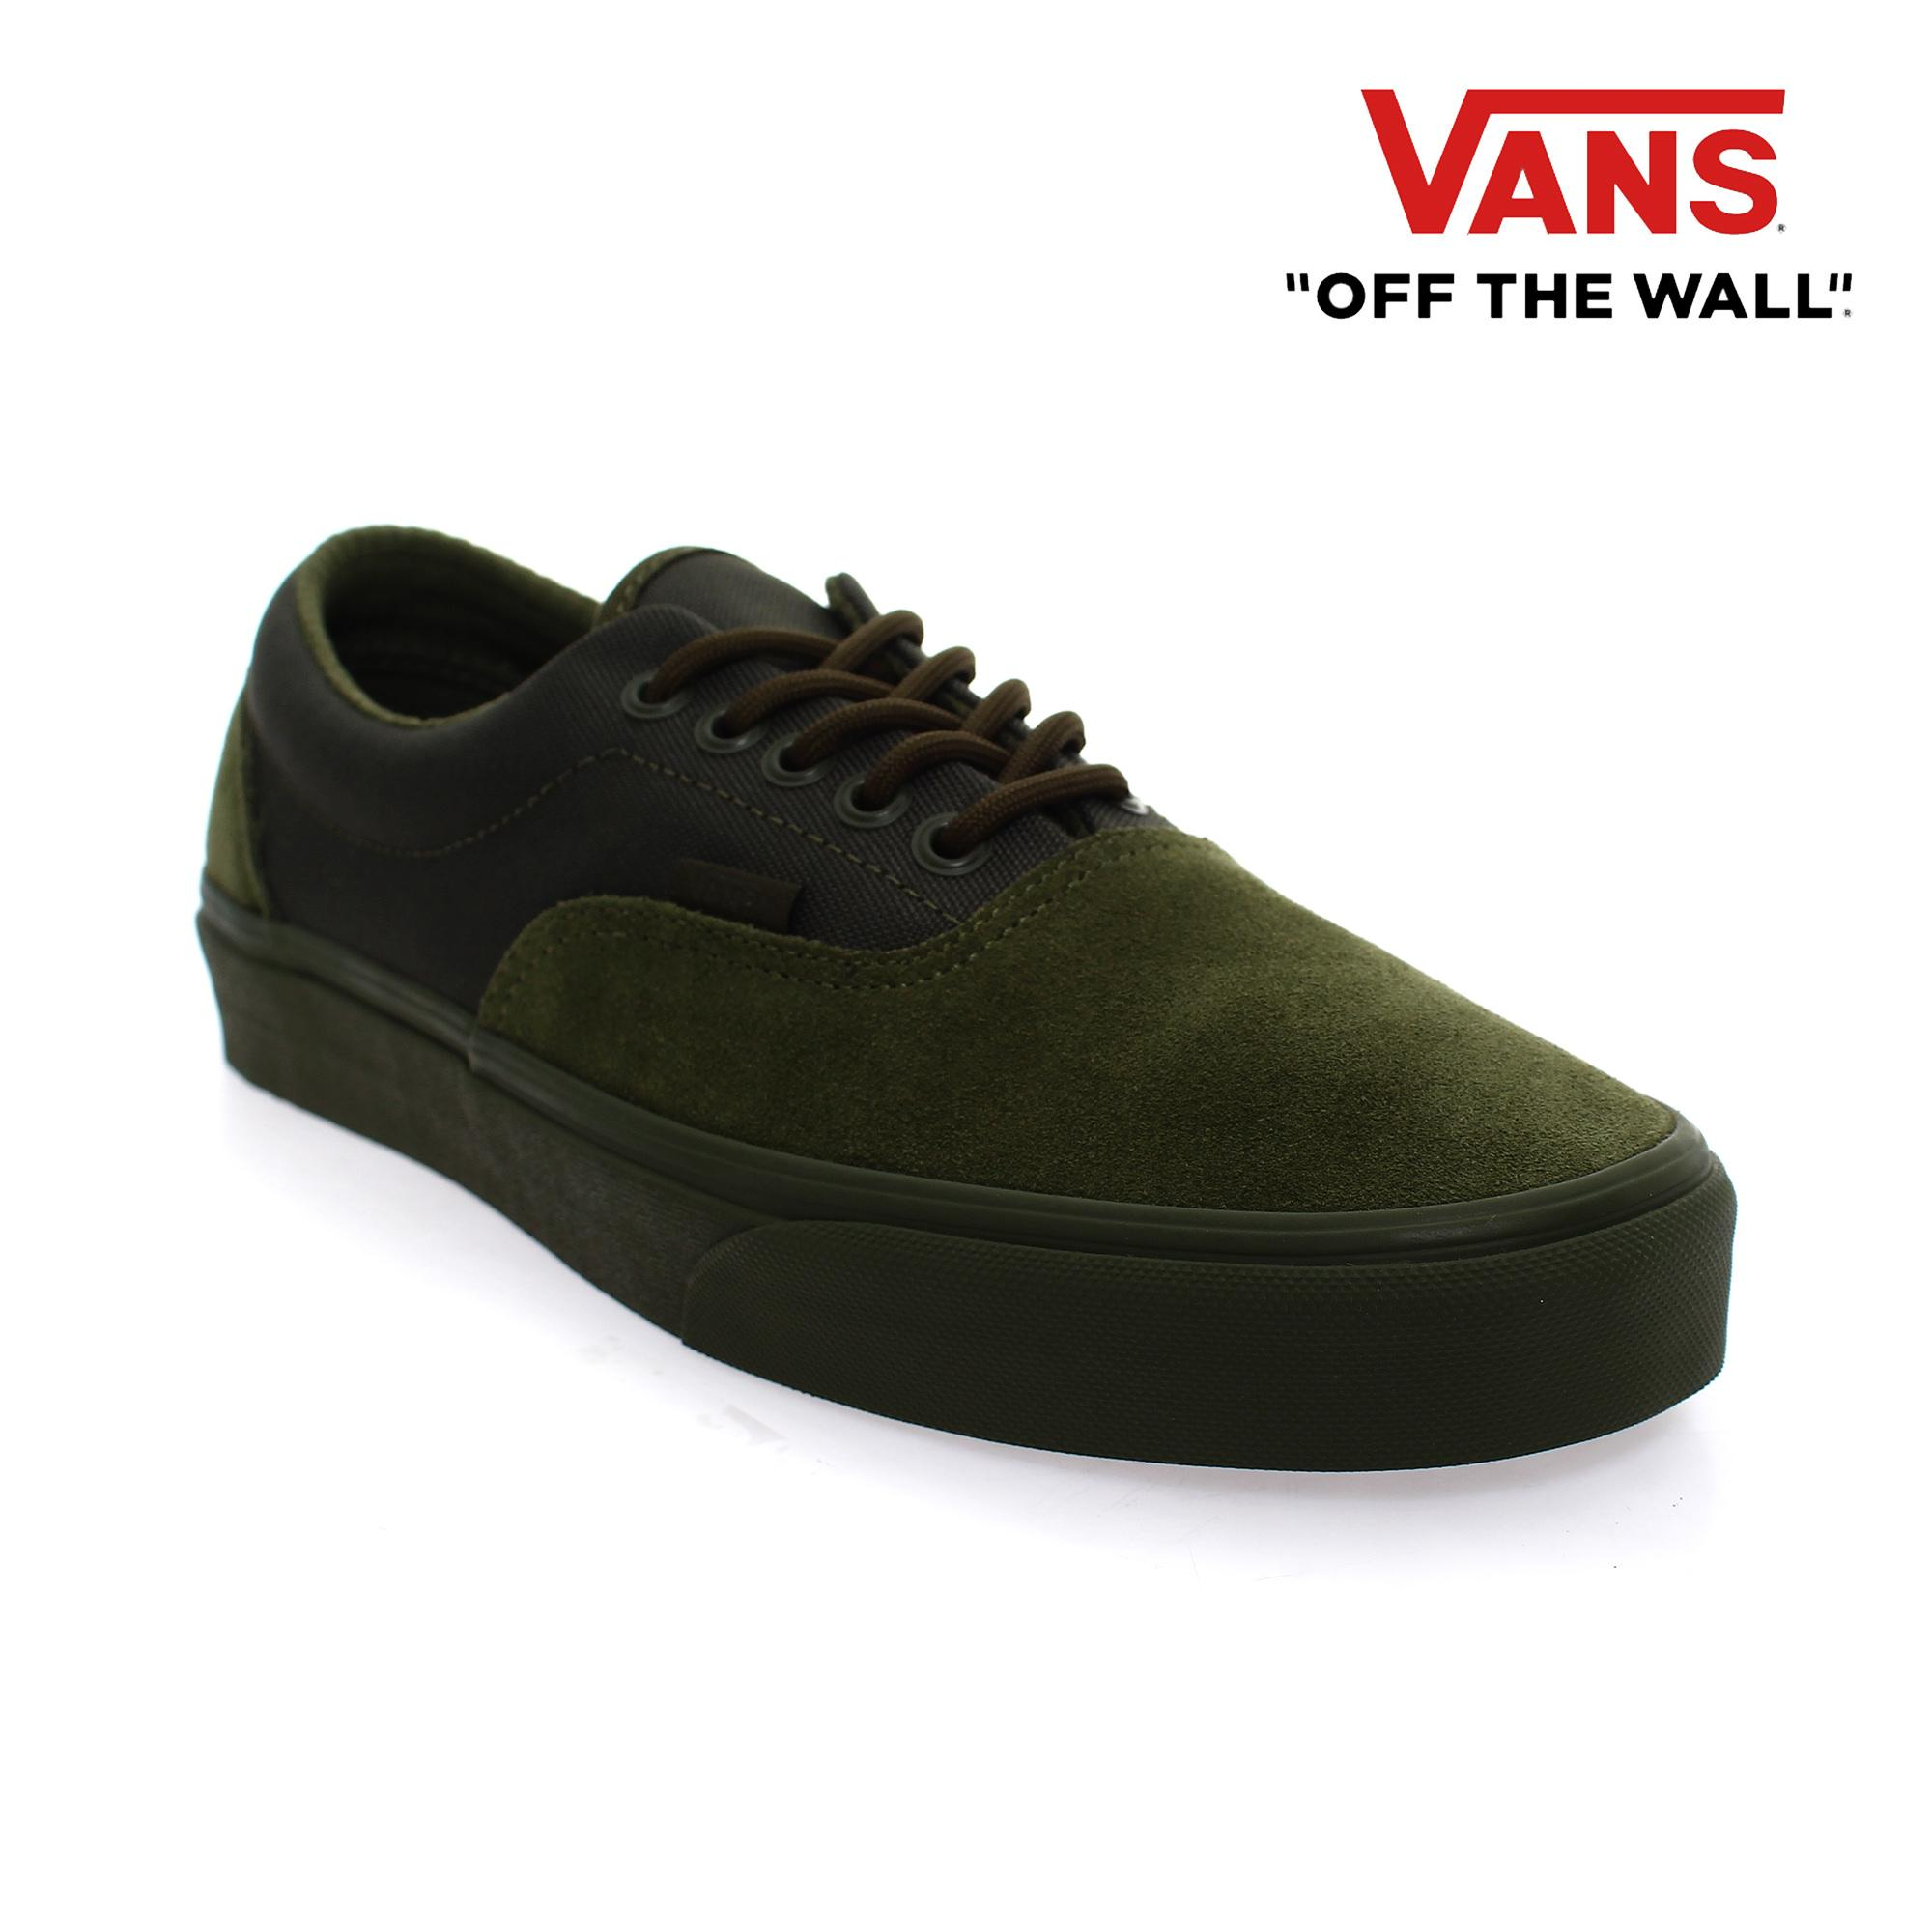 Vans Shoes Philippines New Arrival - Style Guru: Fashion ...